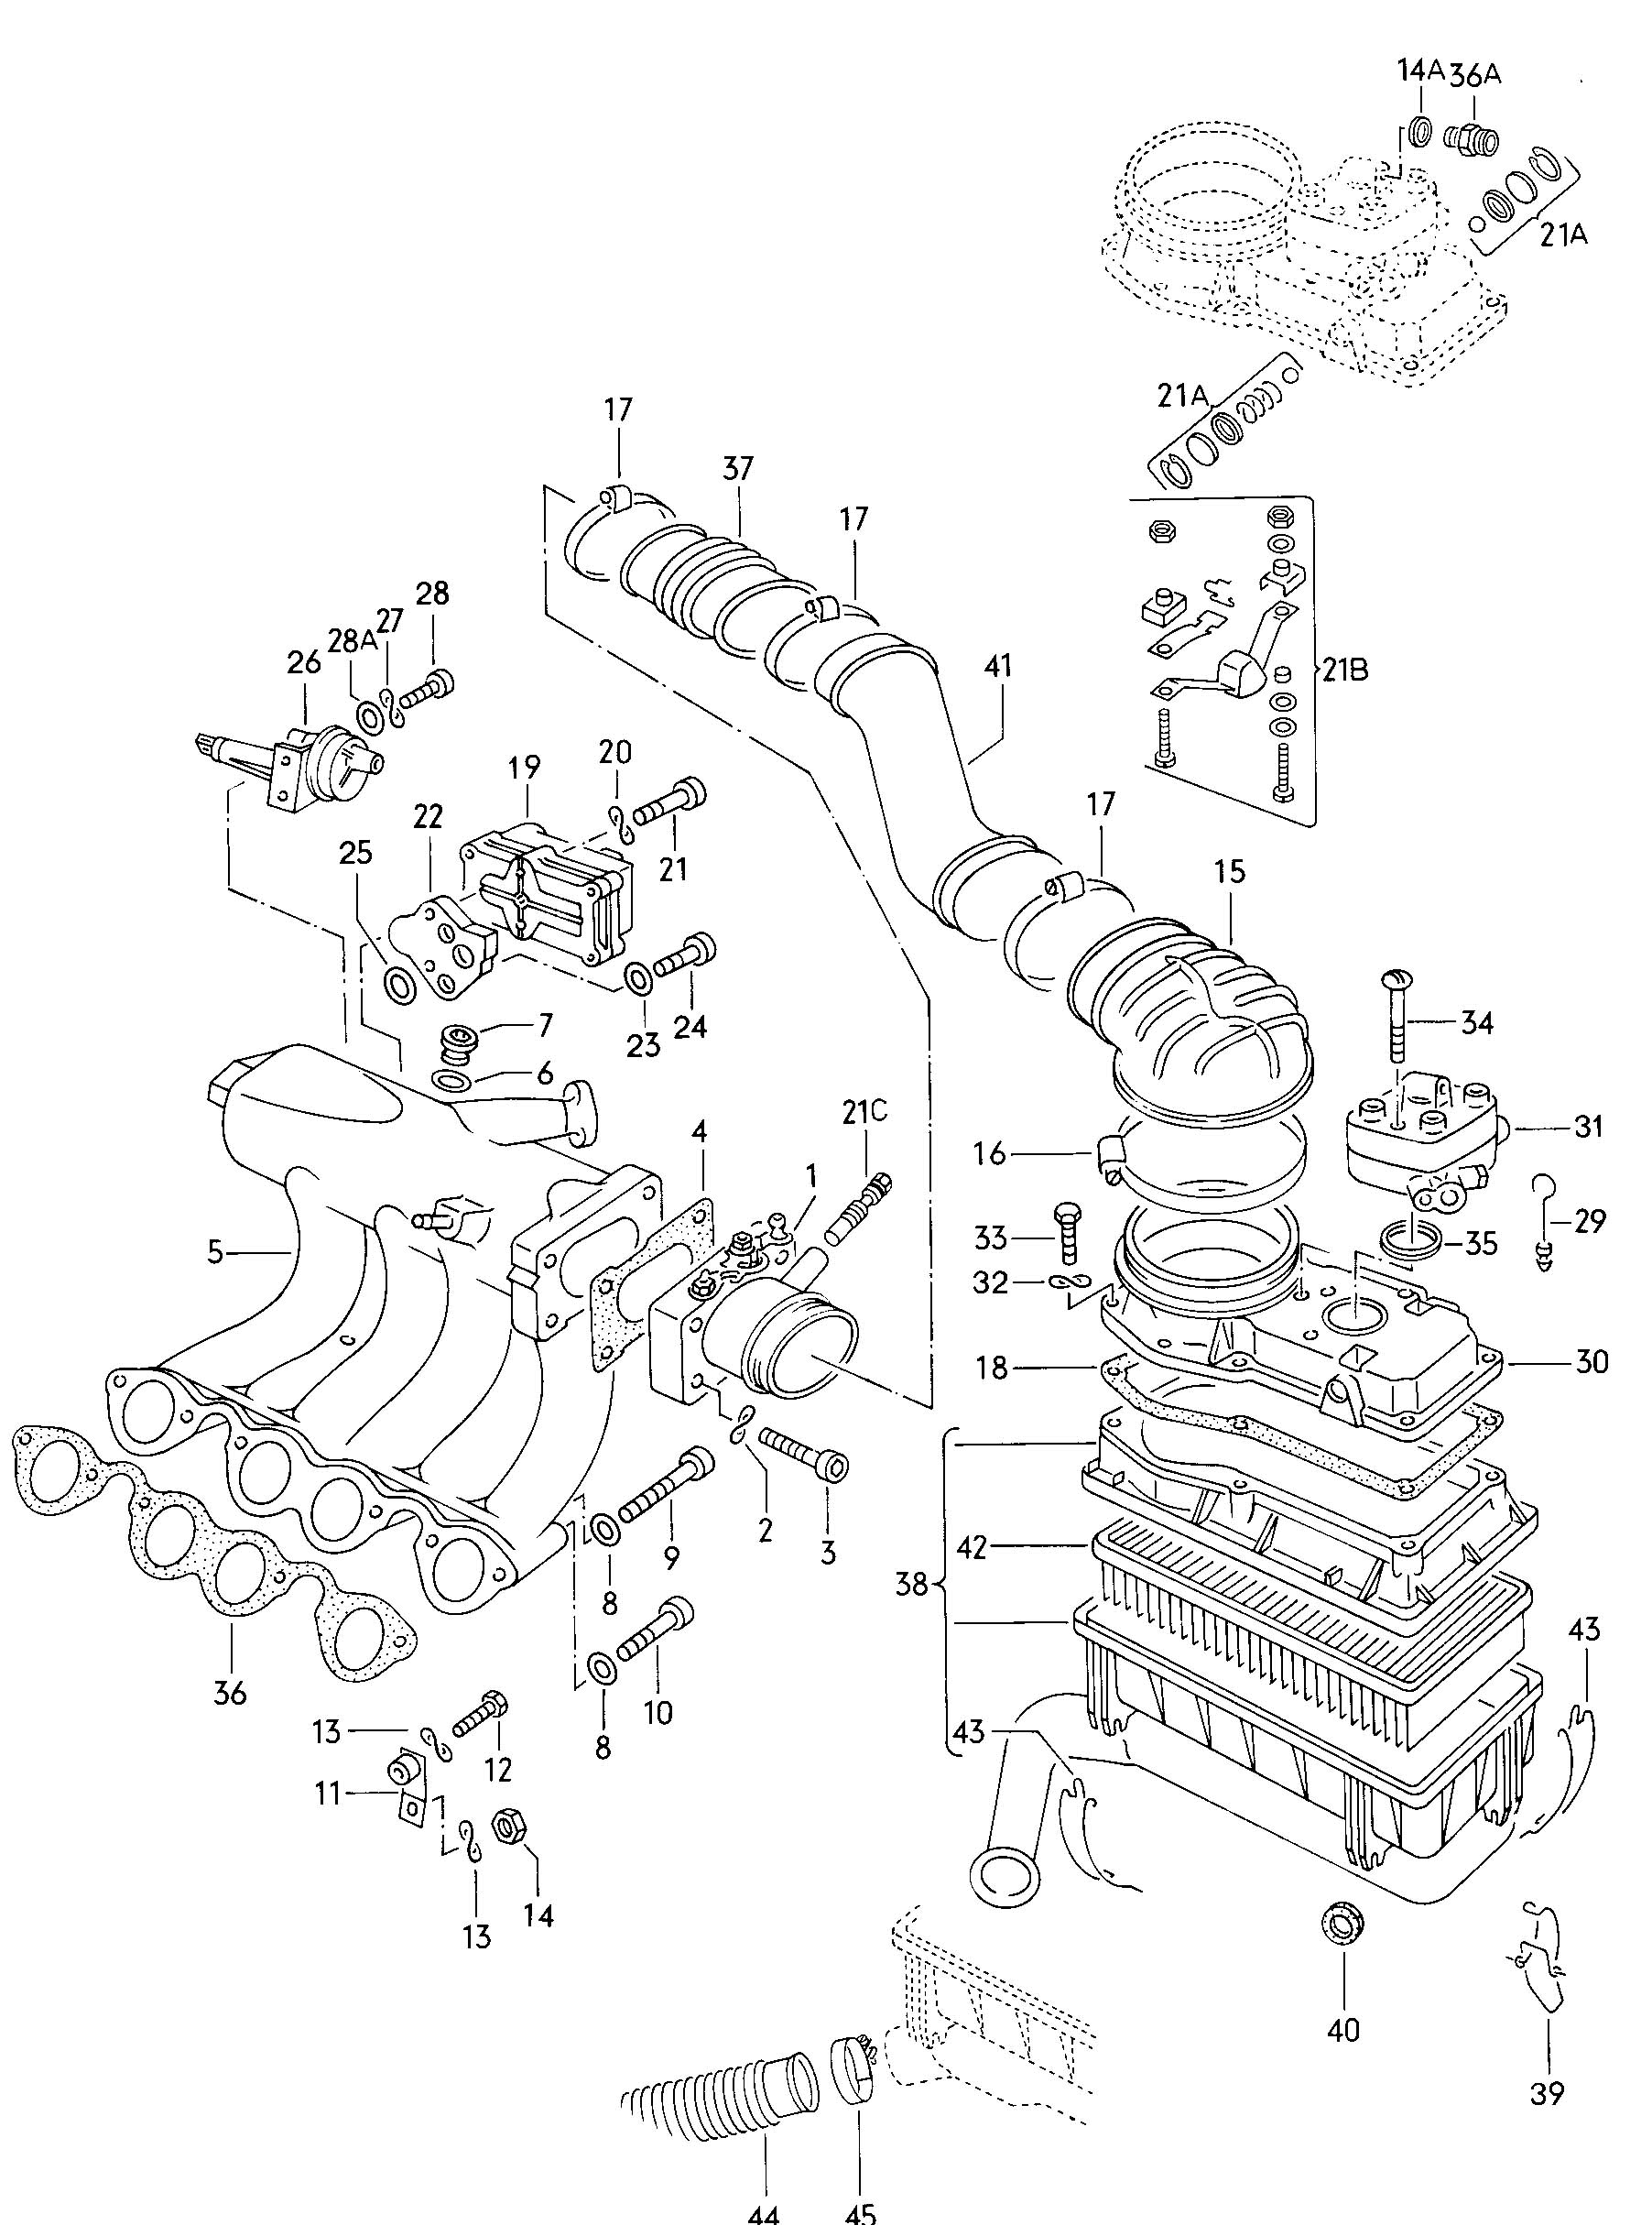 Wiring diagram for chevy venture abs module